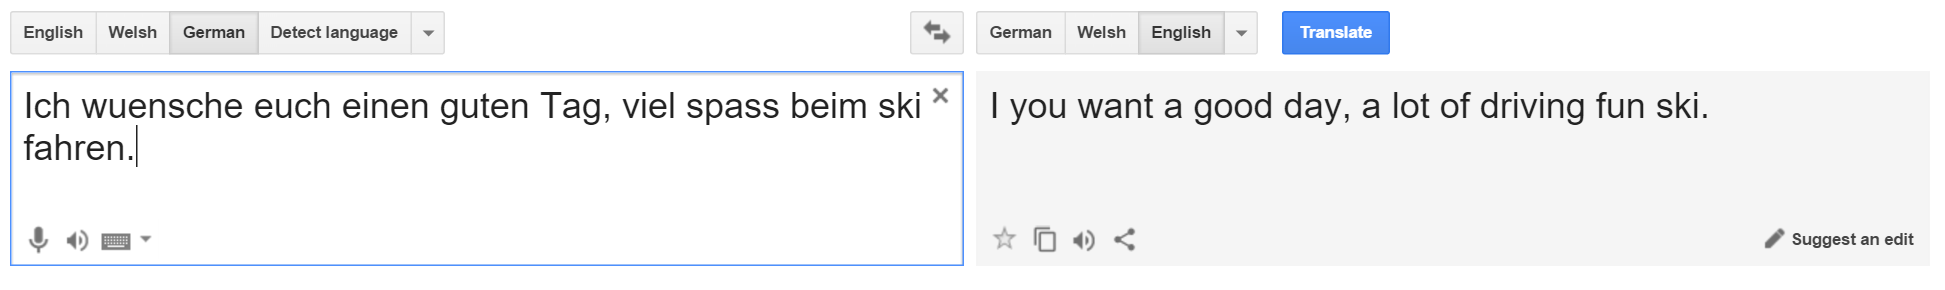 Google Translate German to English translation